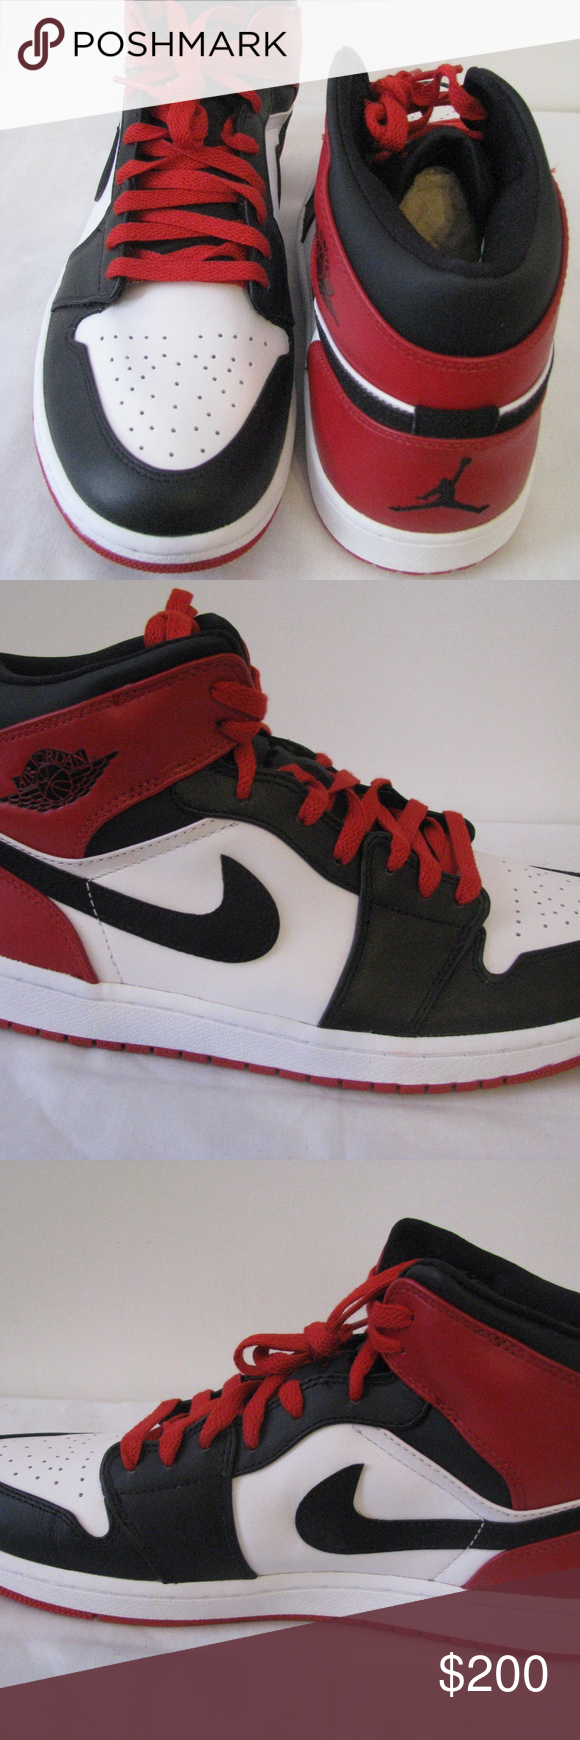 authorized site for whole family stable quality air jordan 1 retro-old love new love/beginning air jordan 1 ...